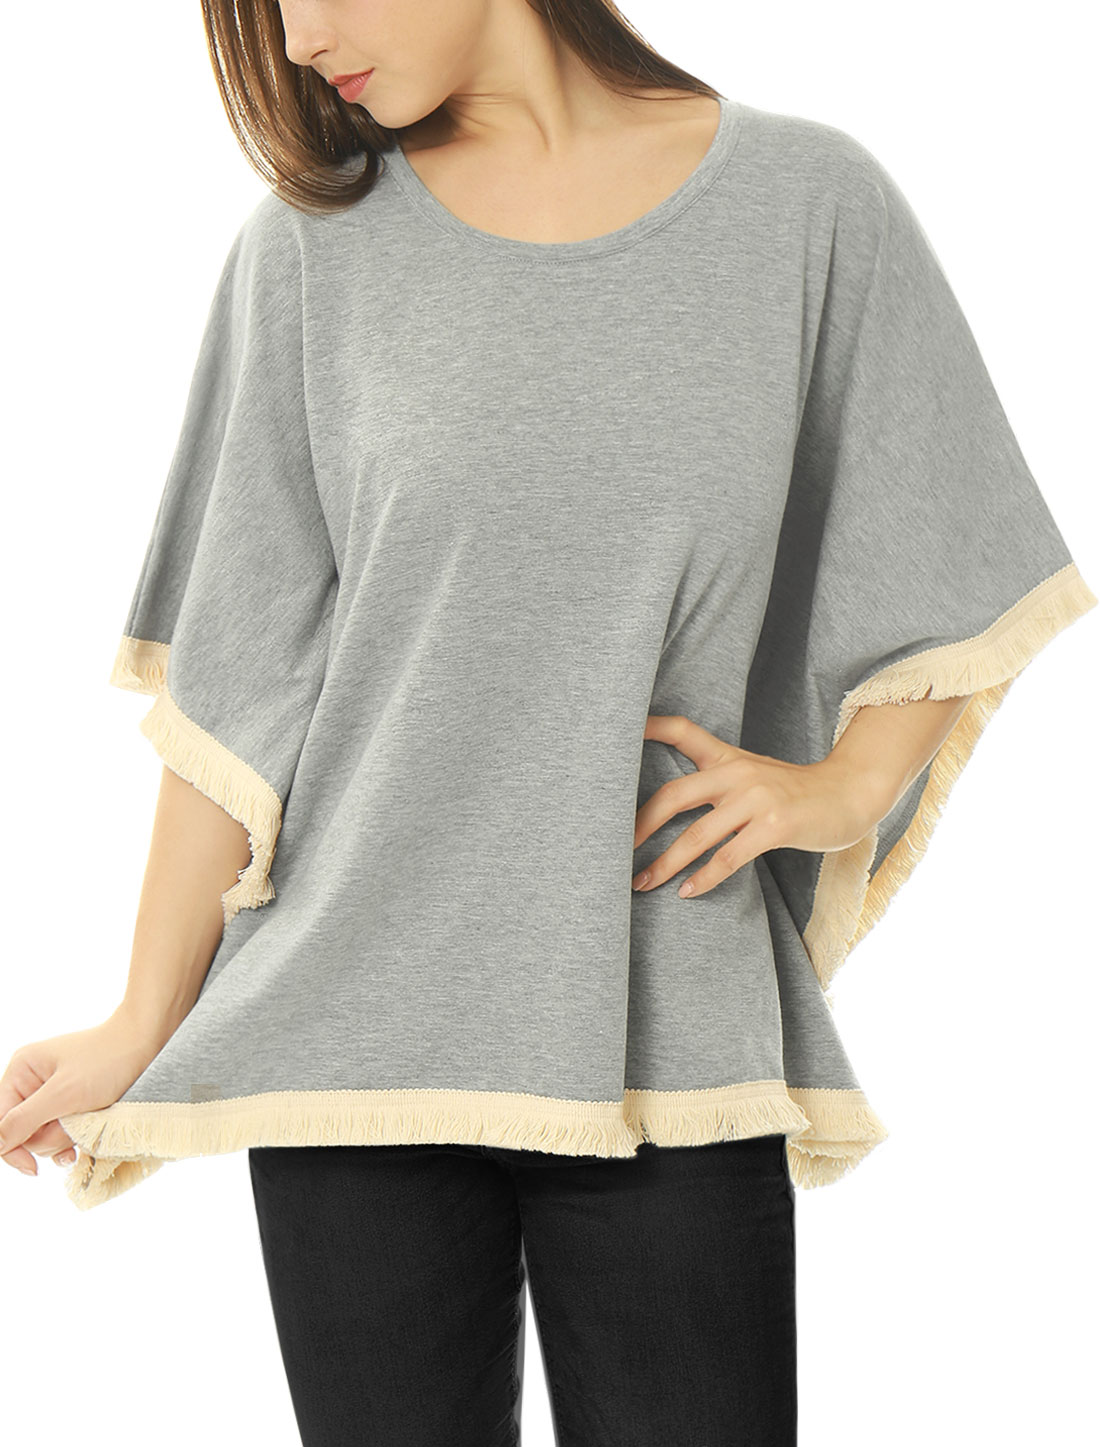 Women Batwing Sleeves Contrast Fringe Oversized Poncho Gray S